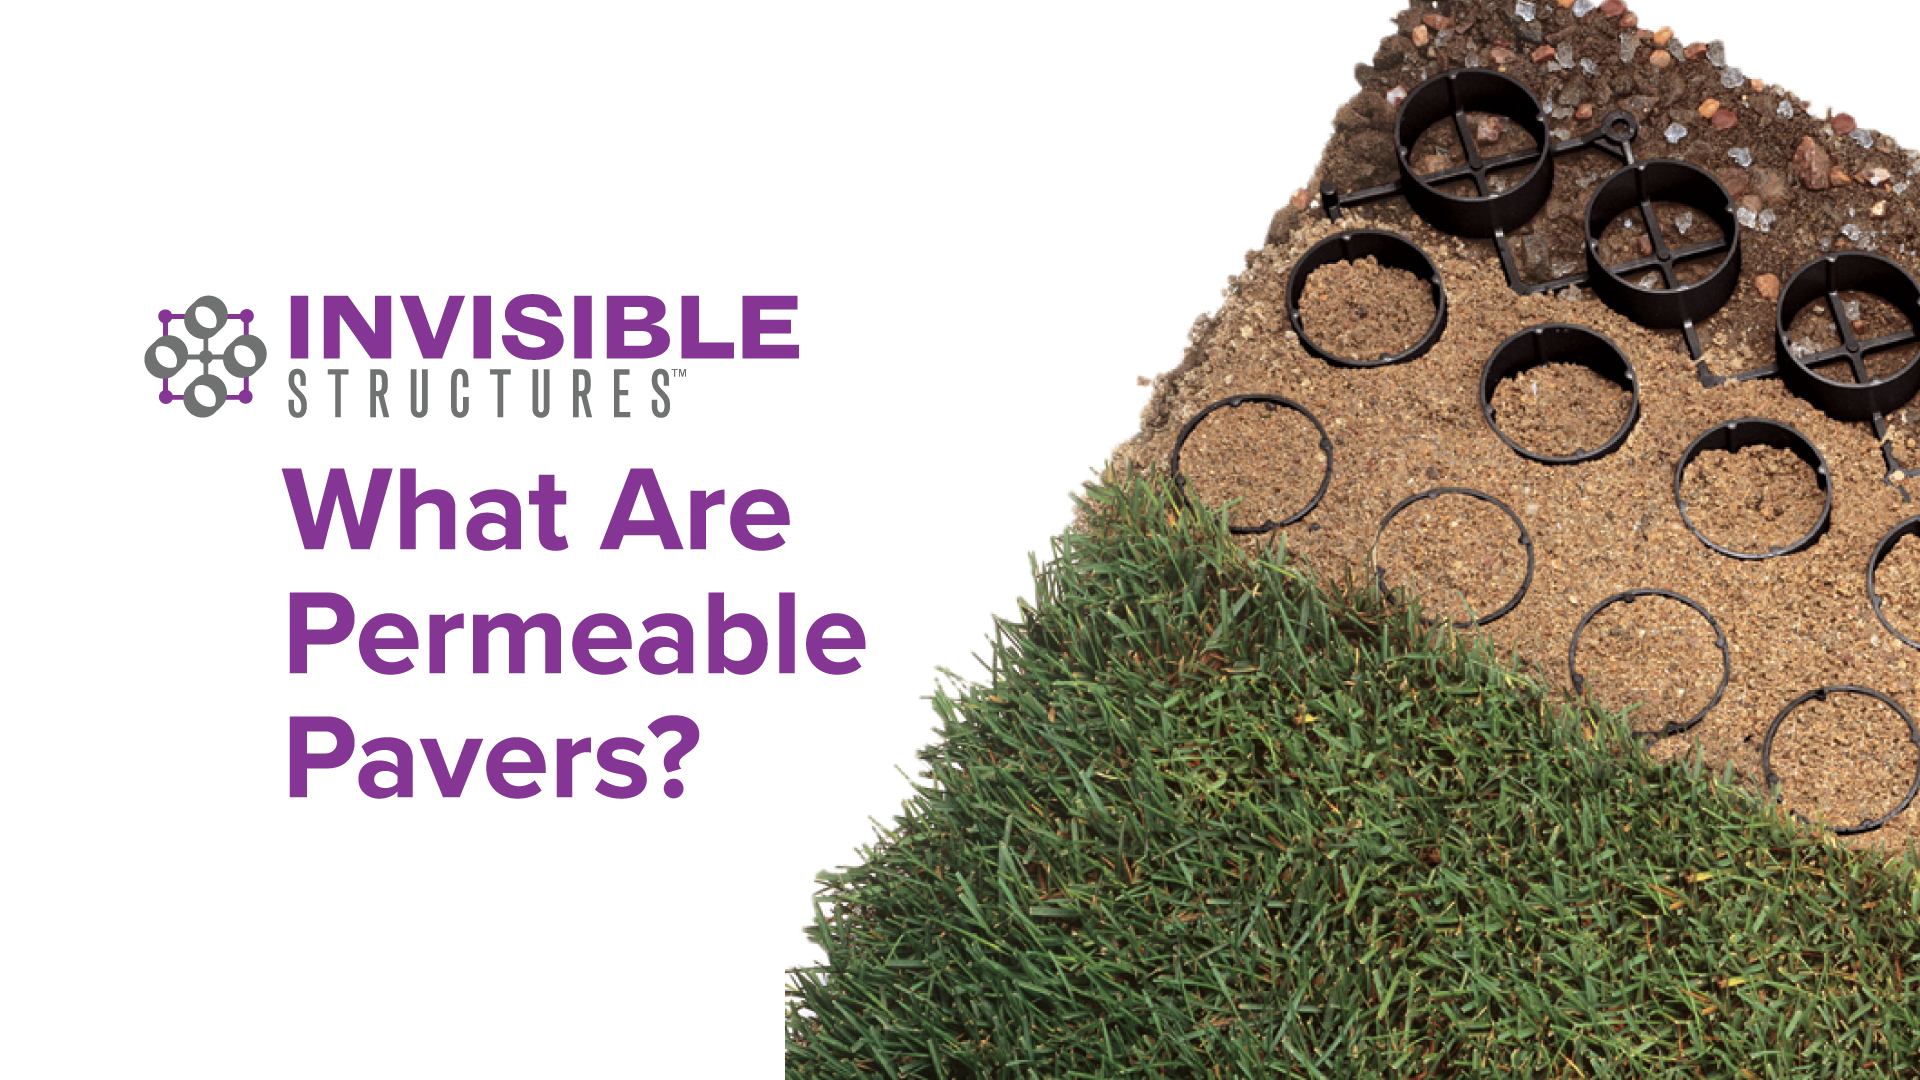 The Official Guide to Permeable Pavers and Porous Paving Systems